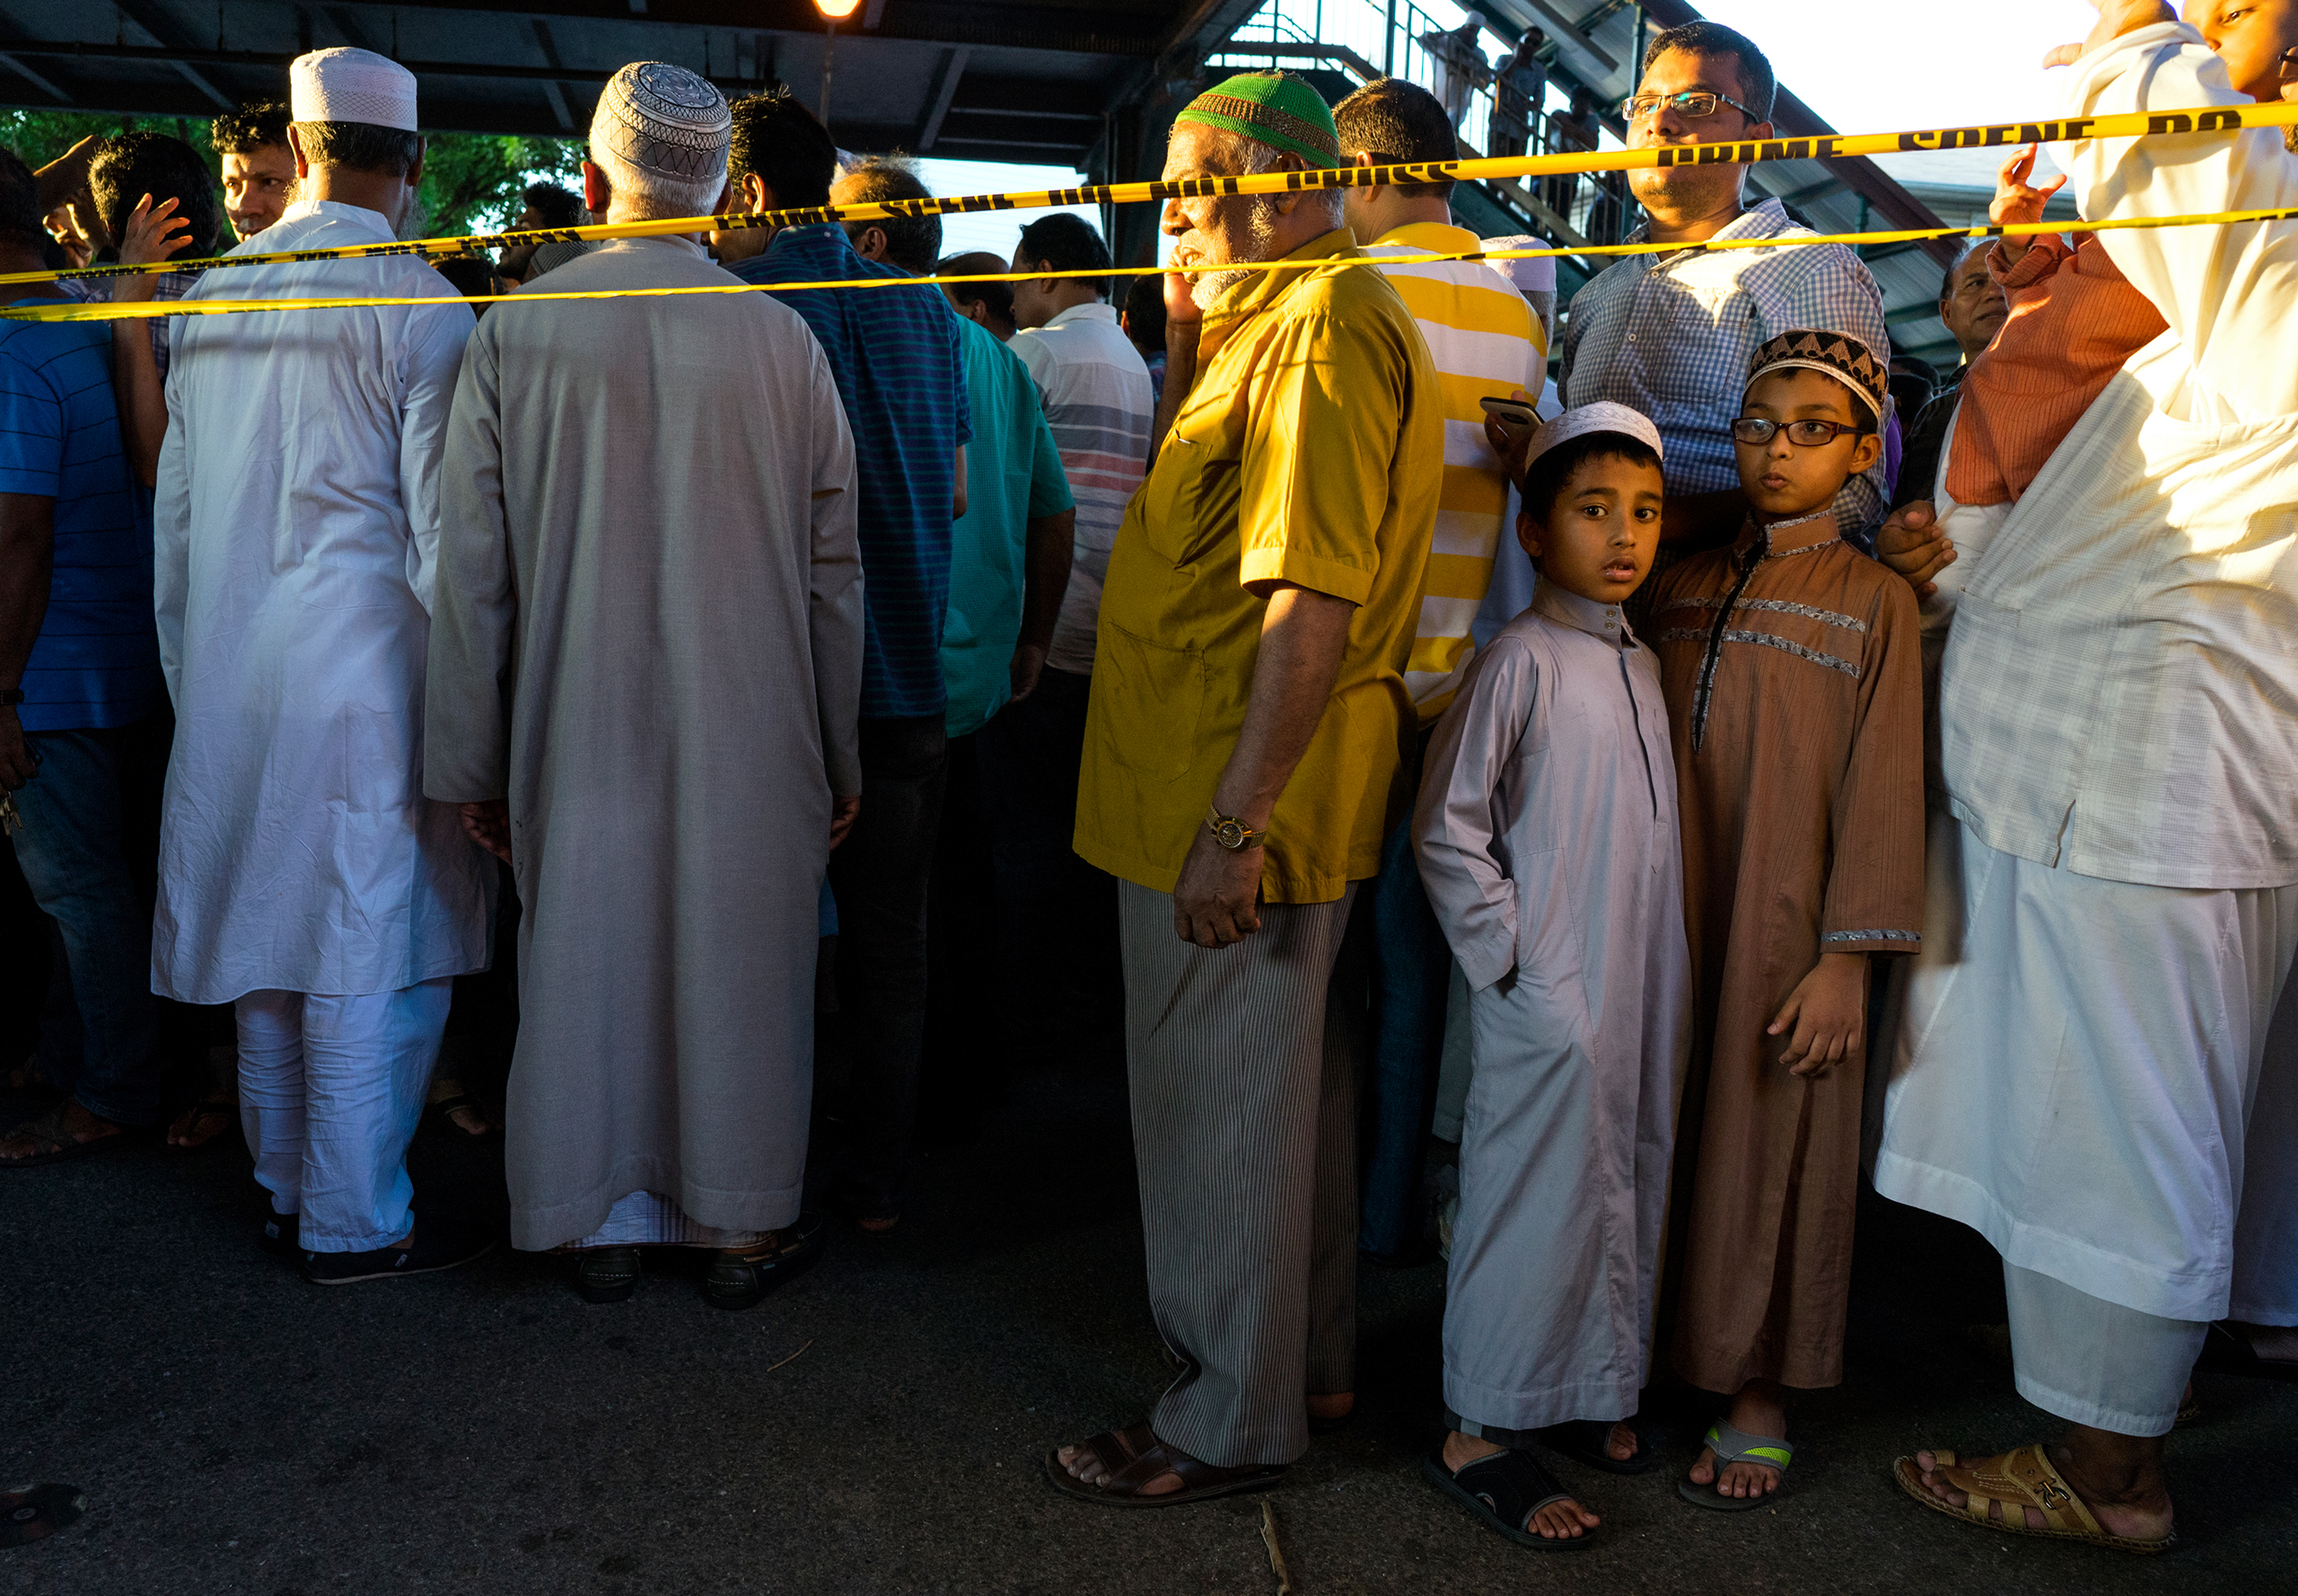 People gather for a demonstration near a crime scene where 55-year-old Imam Maulama Akonjee and his 64-year-old associate, Tharam Uddin, were shot in the back of the head left the Al-Furqan Jame Masjid mosque in the Ozone Park section of Queens in New York City on Aug. 13, 2016, .